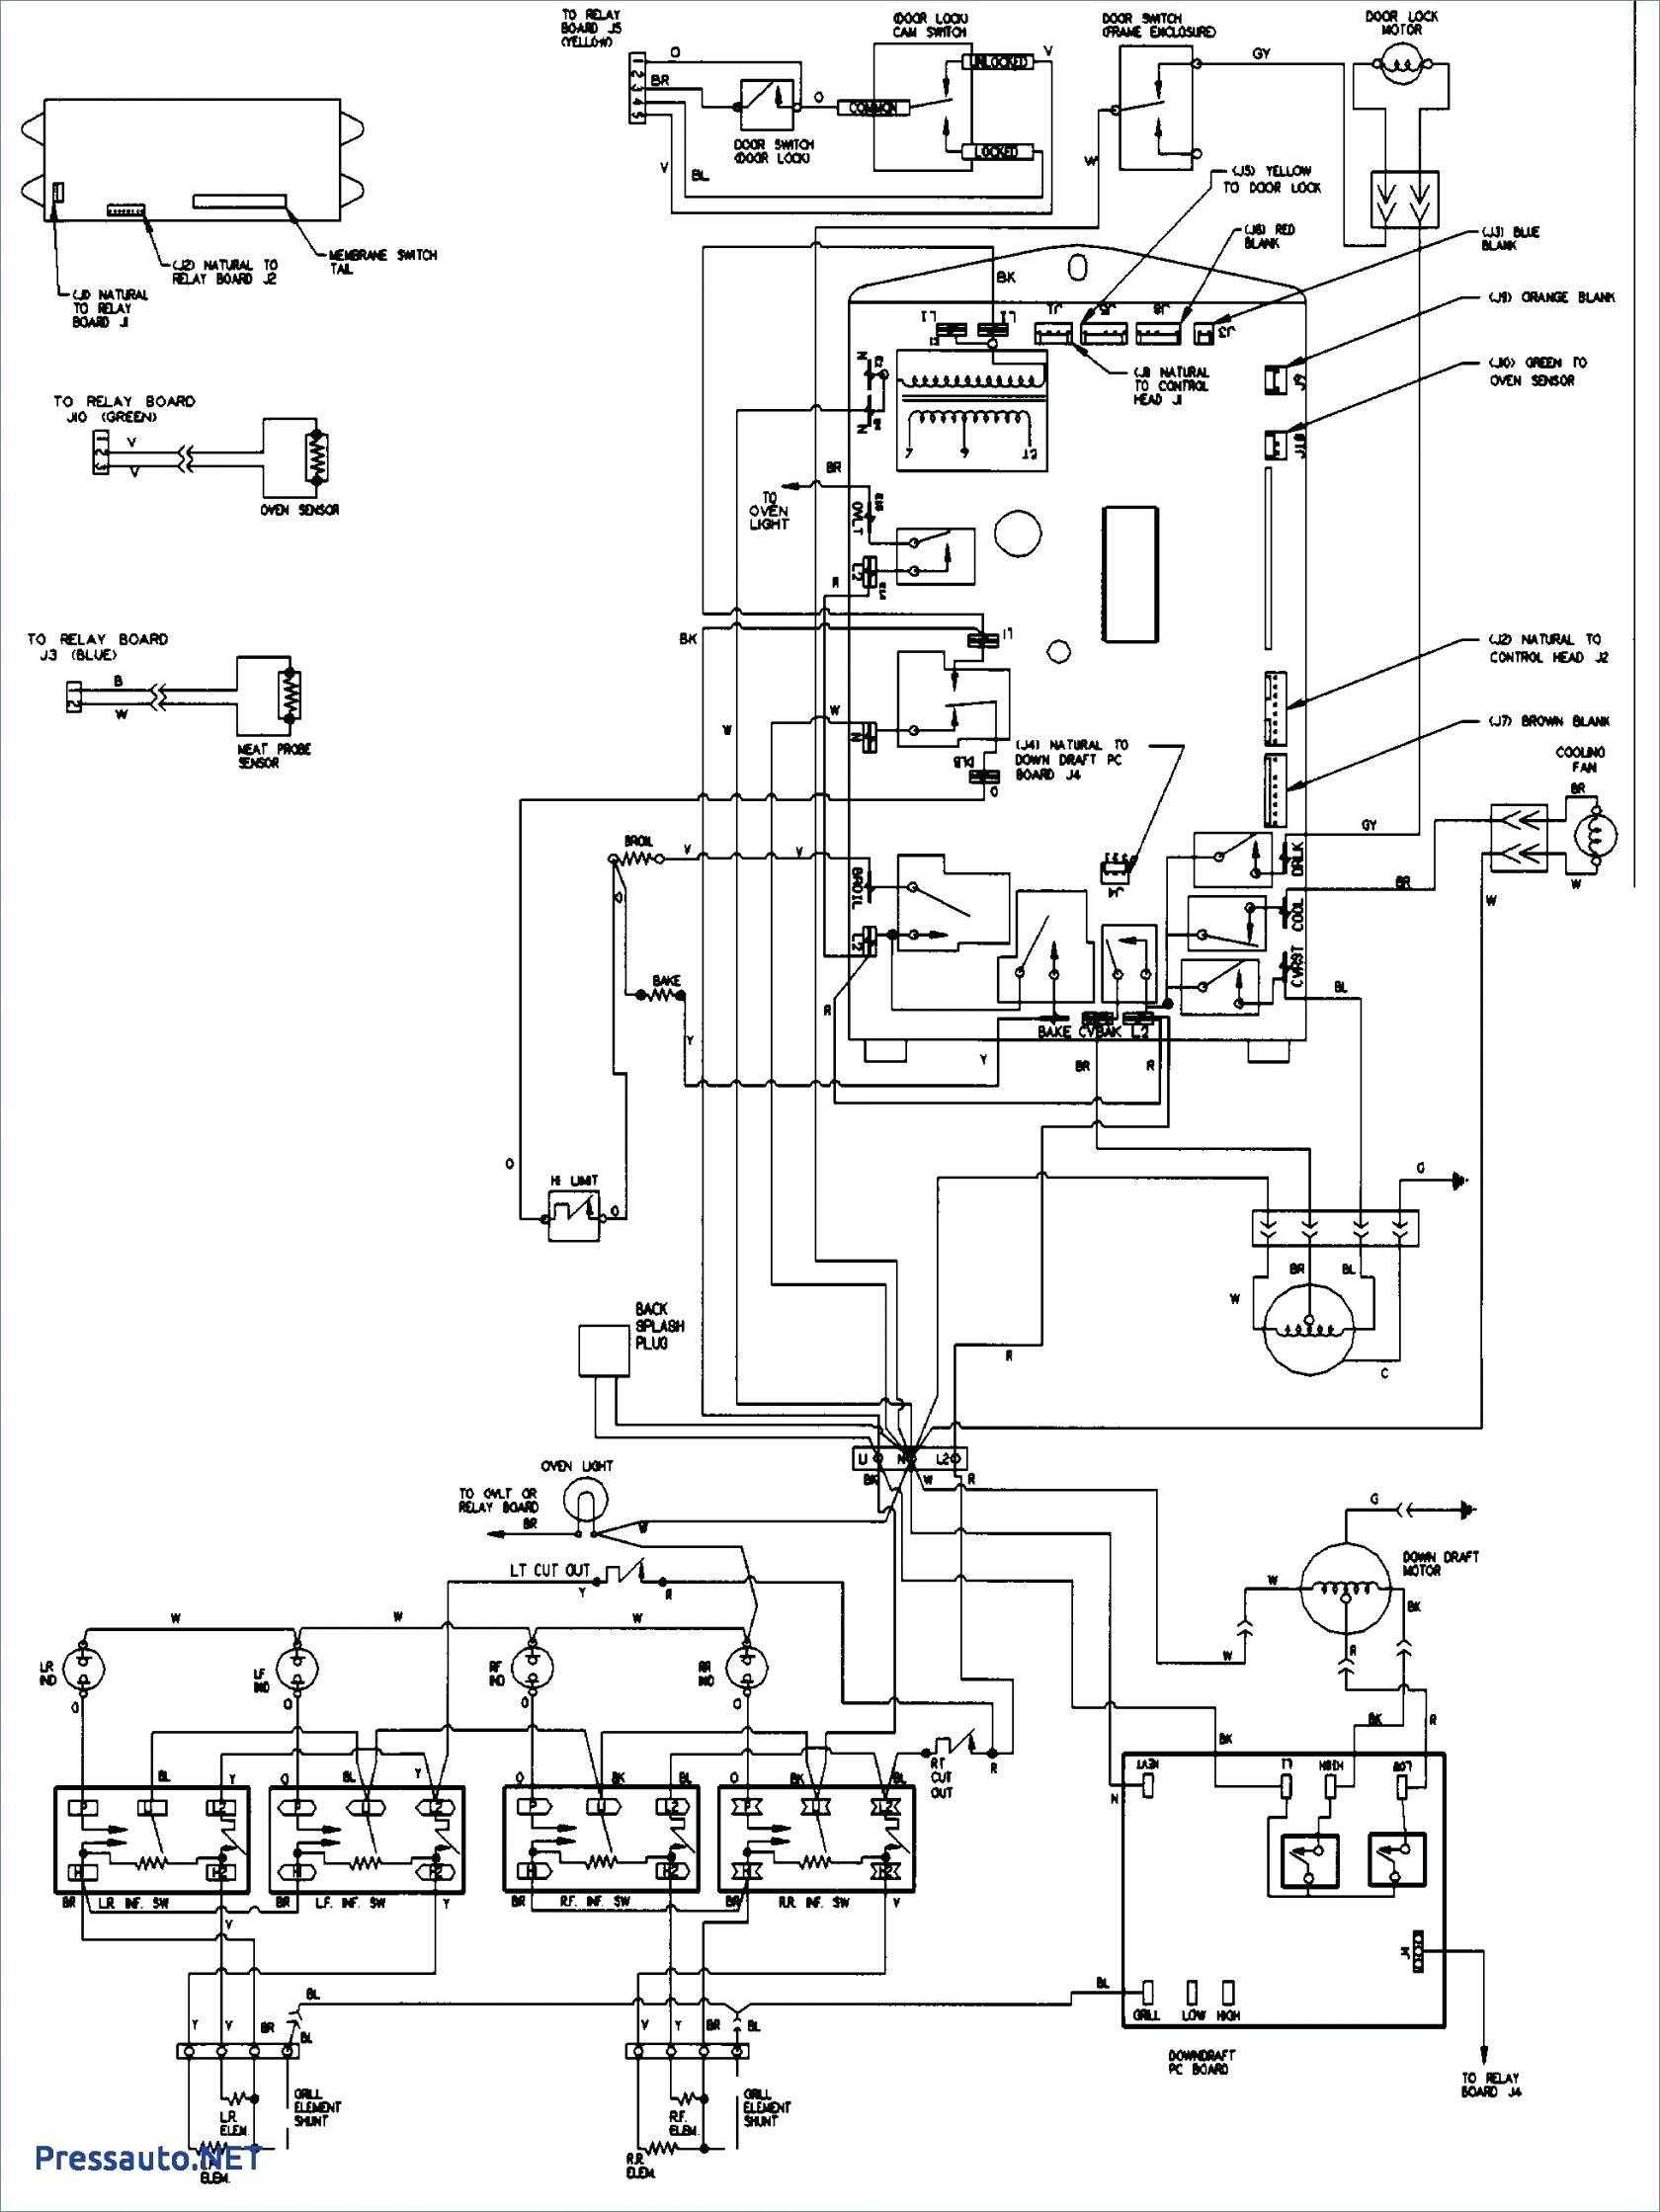 Lennox Signaturestat Wiring Diagram